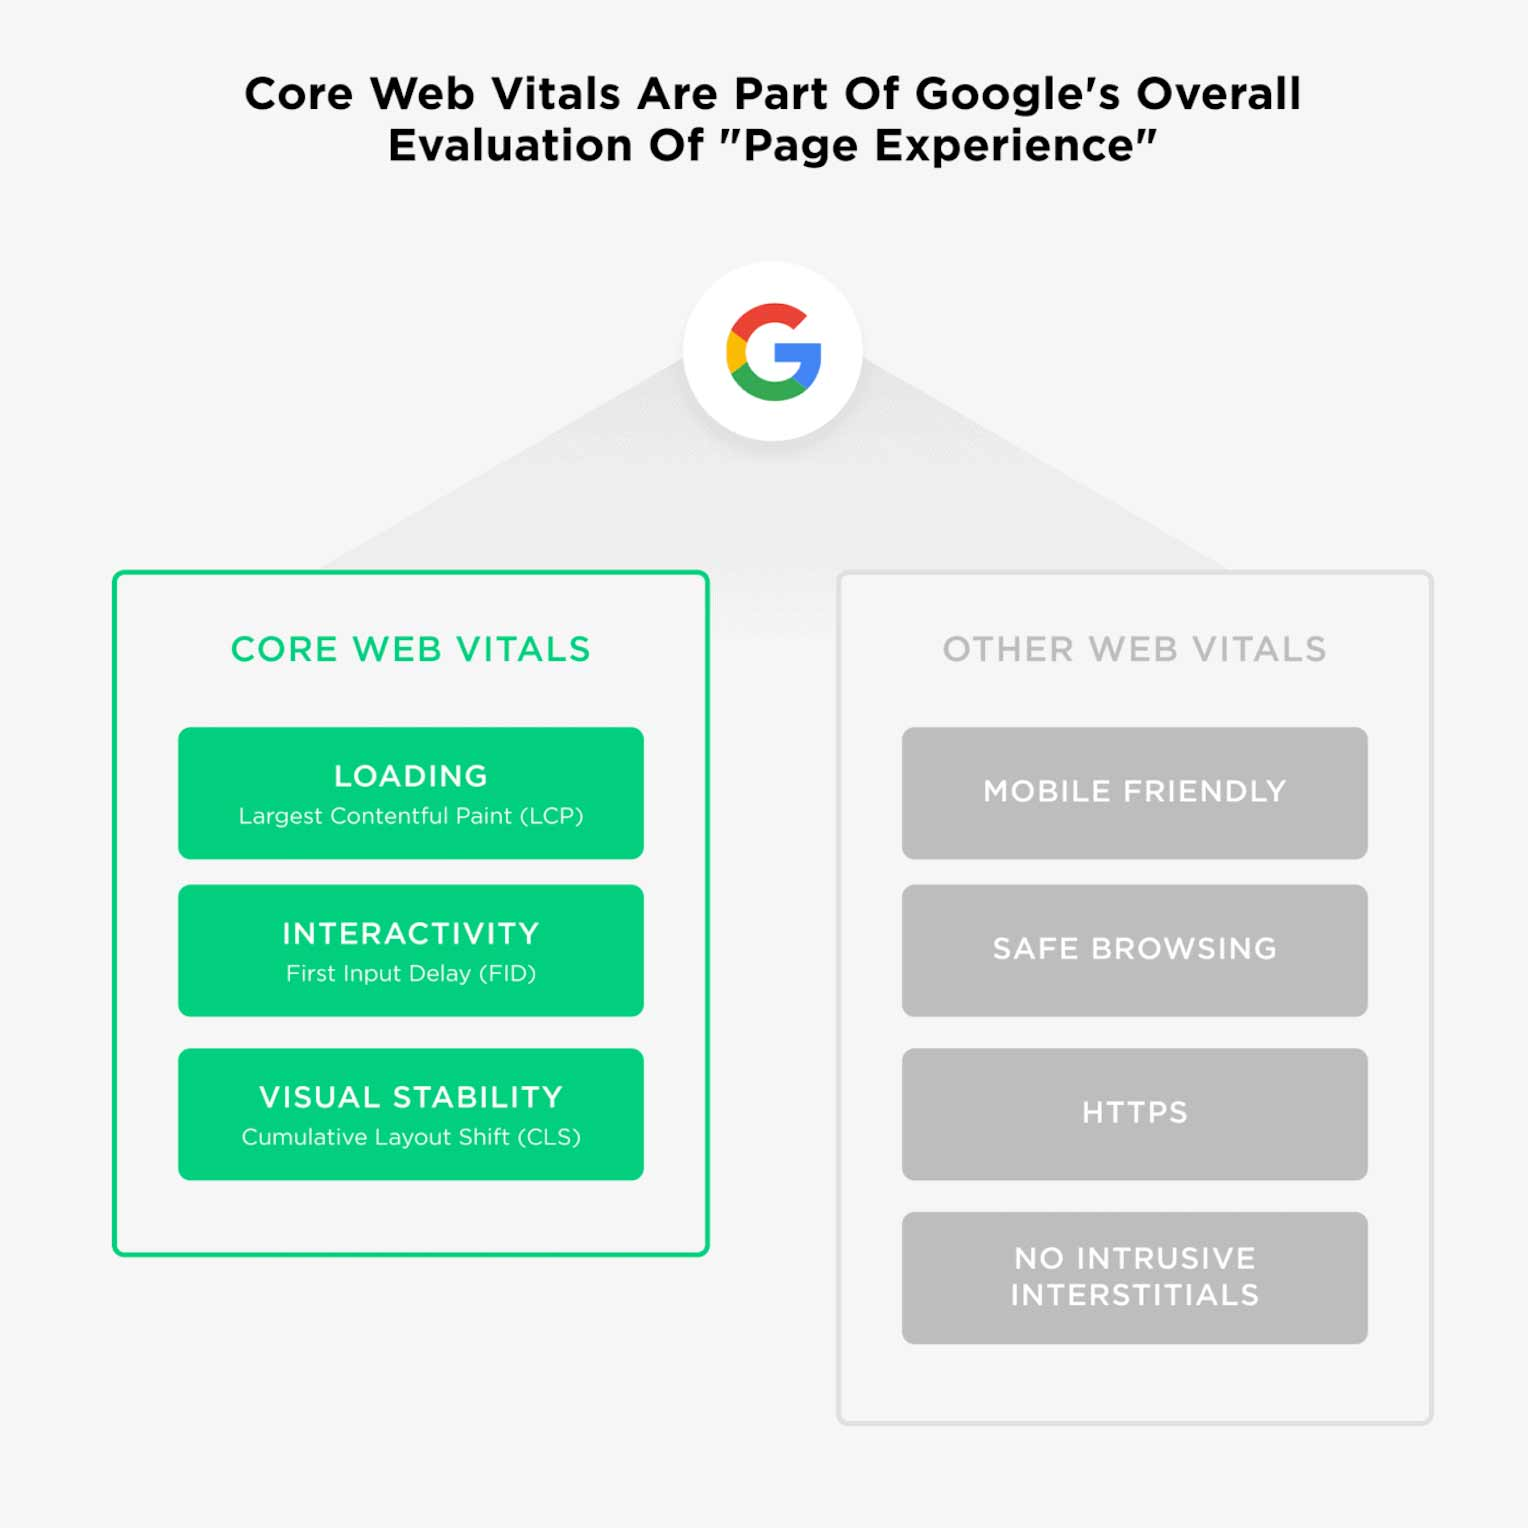 core-web-vitals-are-part-of-googles-overall-evaluation-of-page-experience